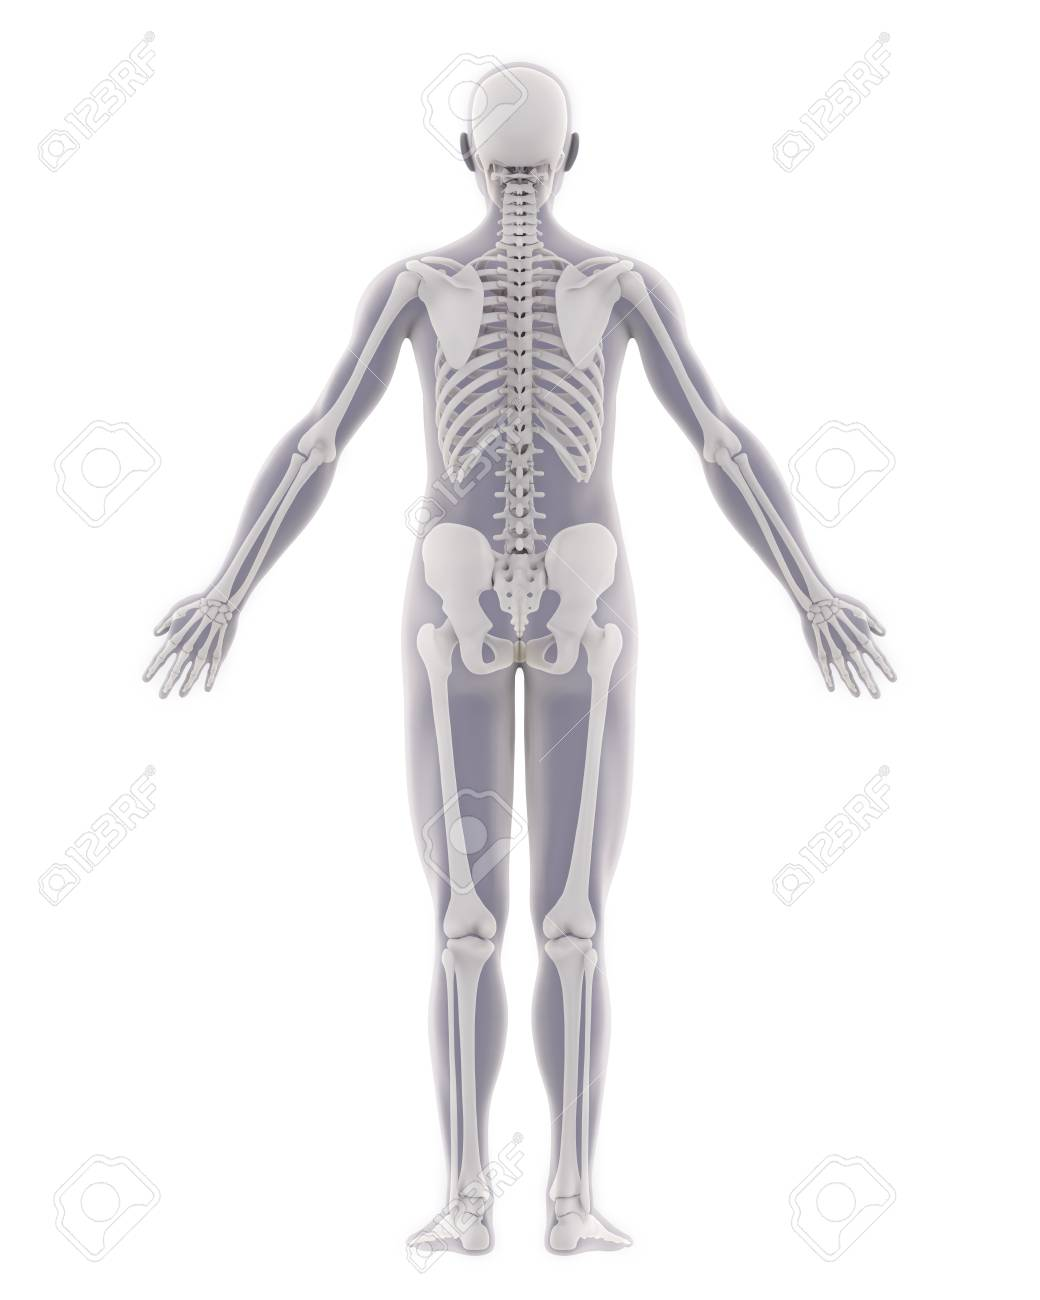 Wonderbaar Human Skeleton Anatomy Isolated Stock Photo, Picture And Royalty CZ-66